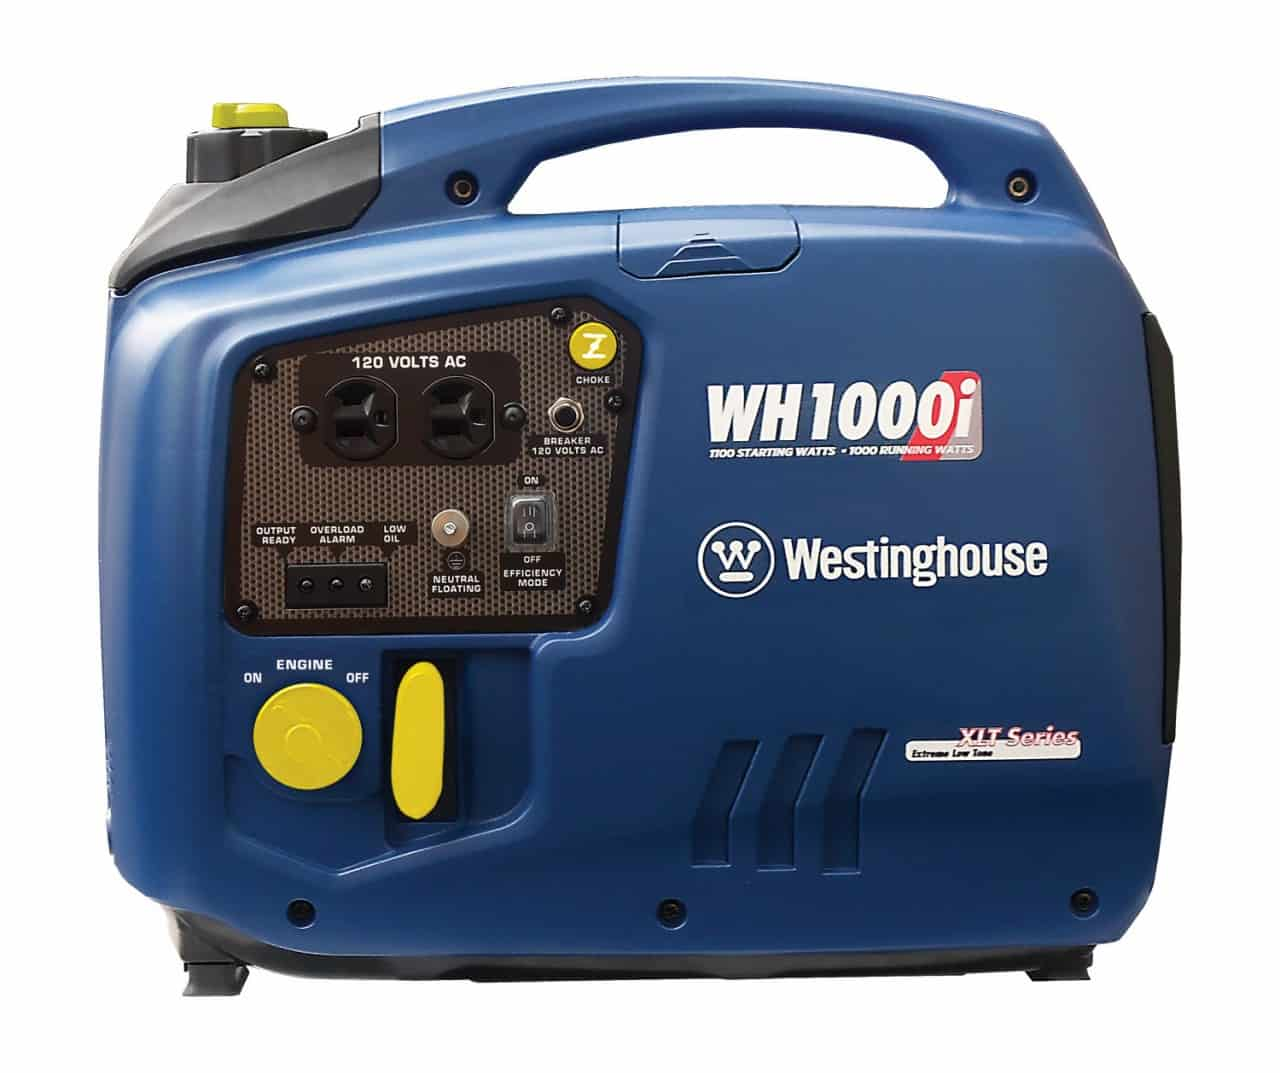 The 1000 watt inverter generator from Westinghouse WH1000i